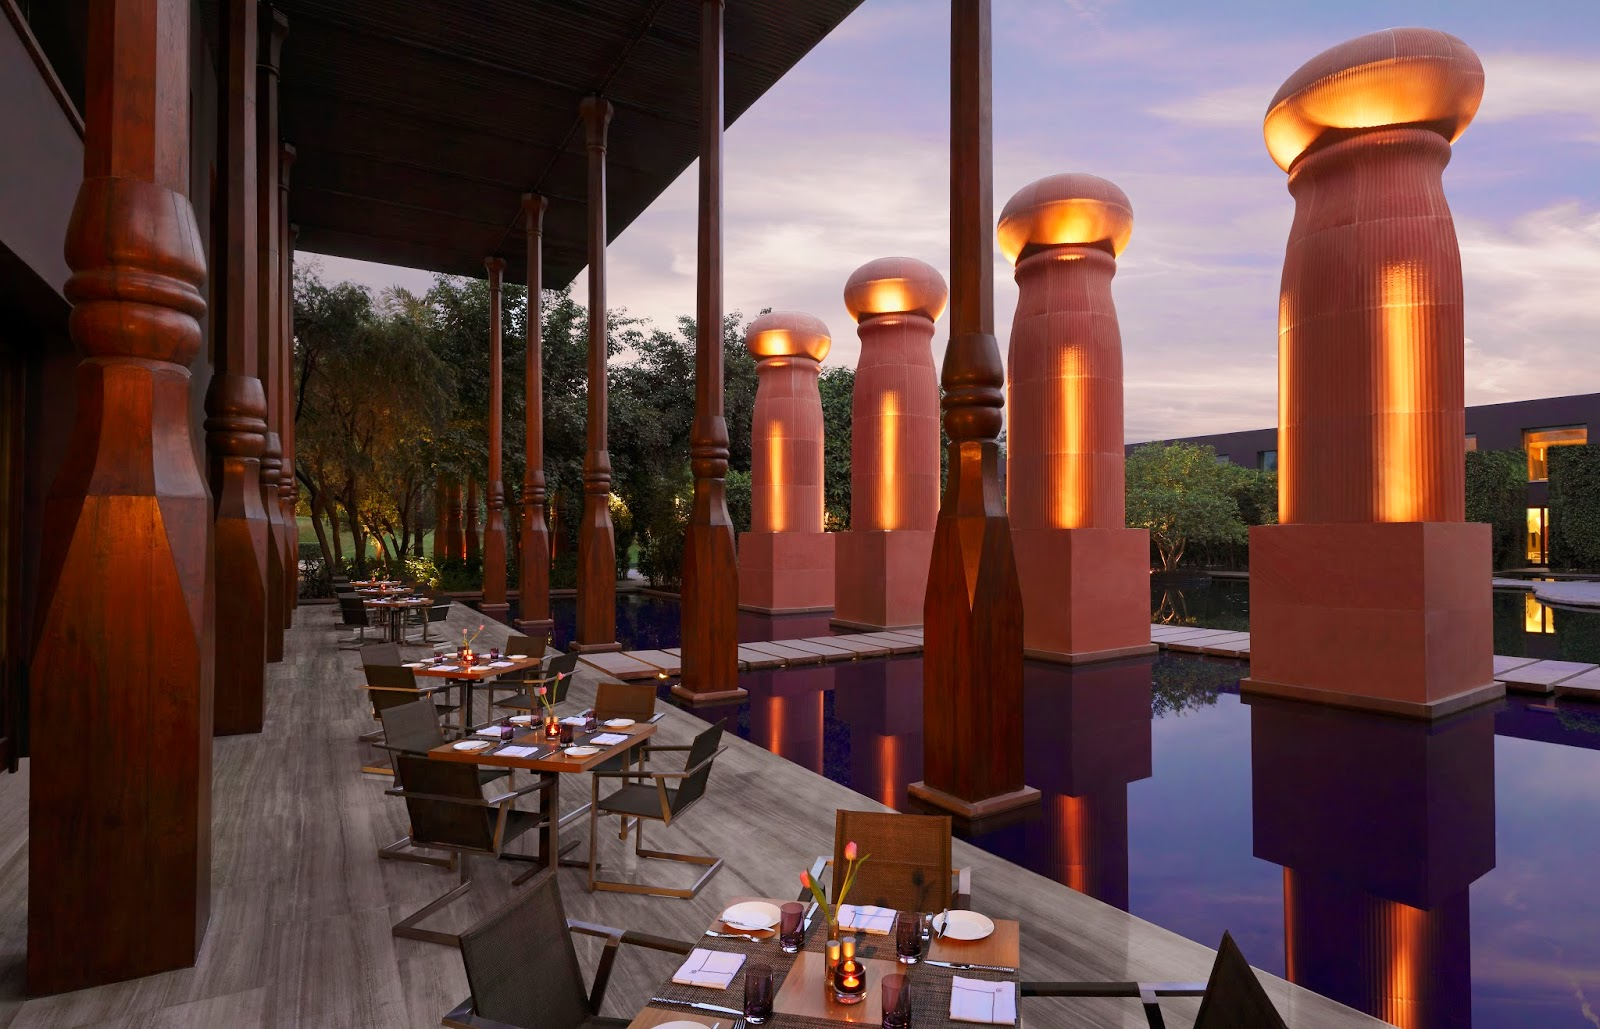 15 Romantic Restaurants In Gurgaon (with prices) In 2021